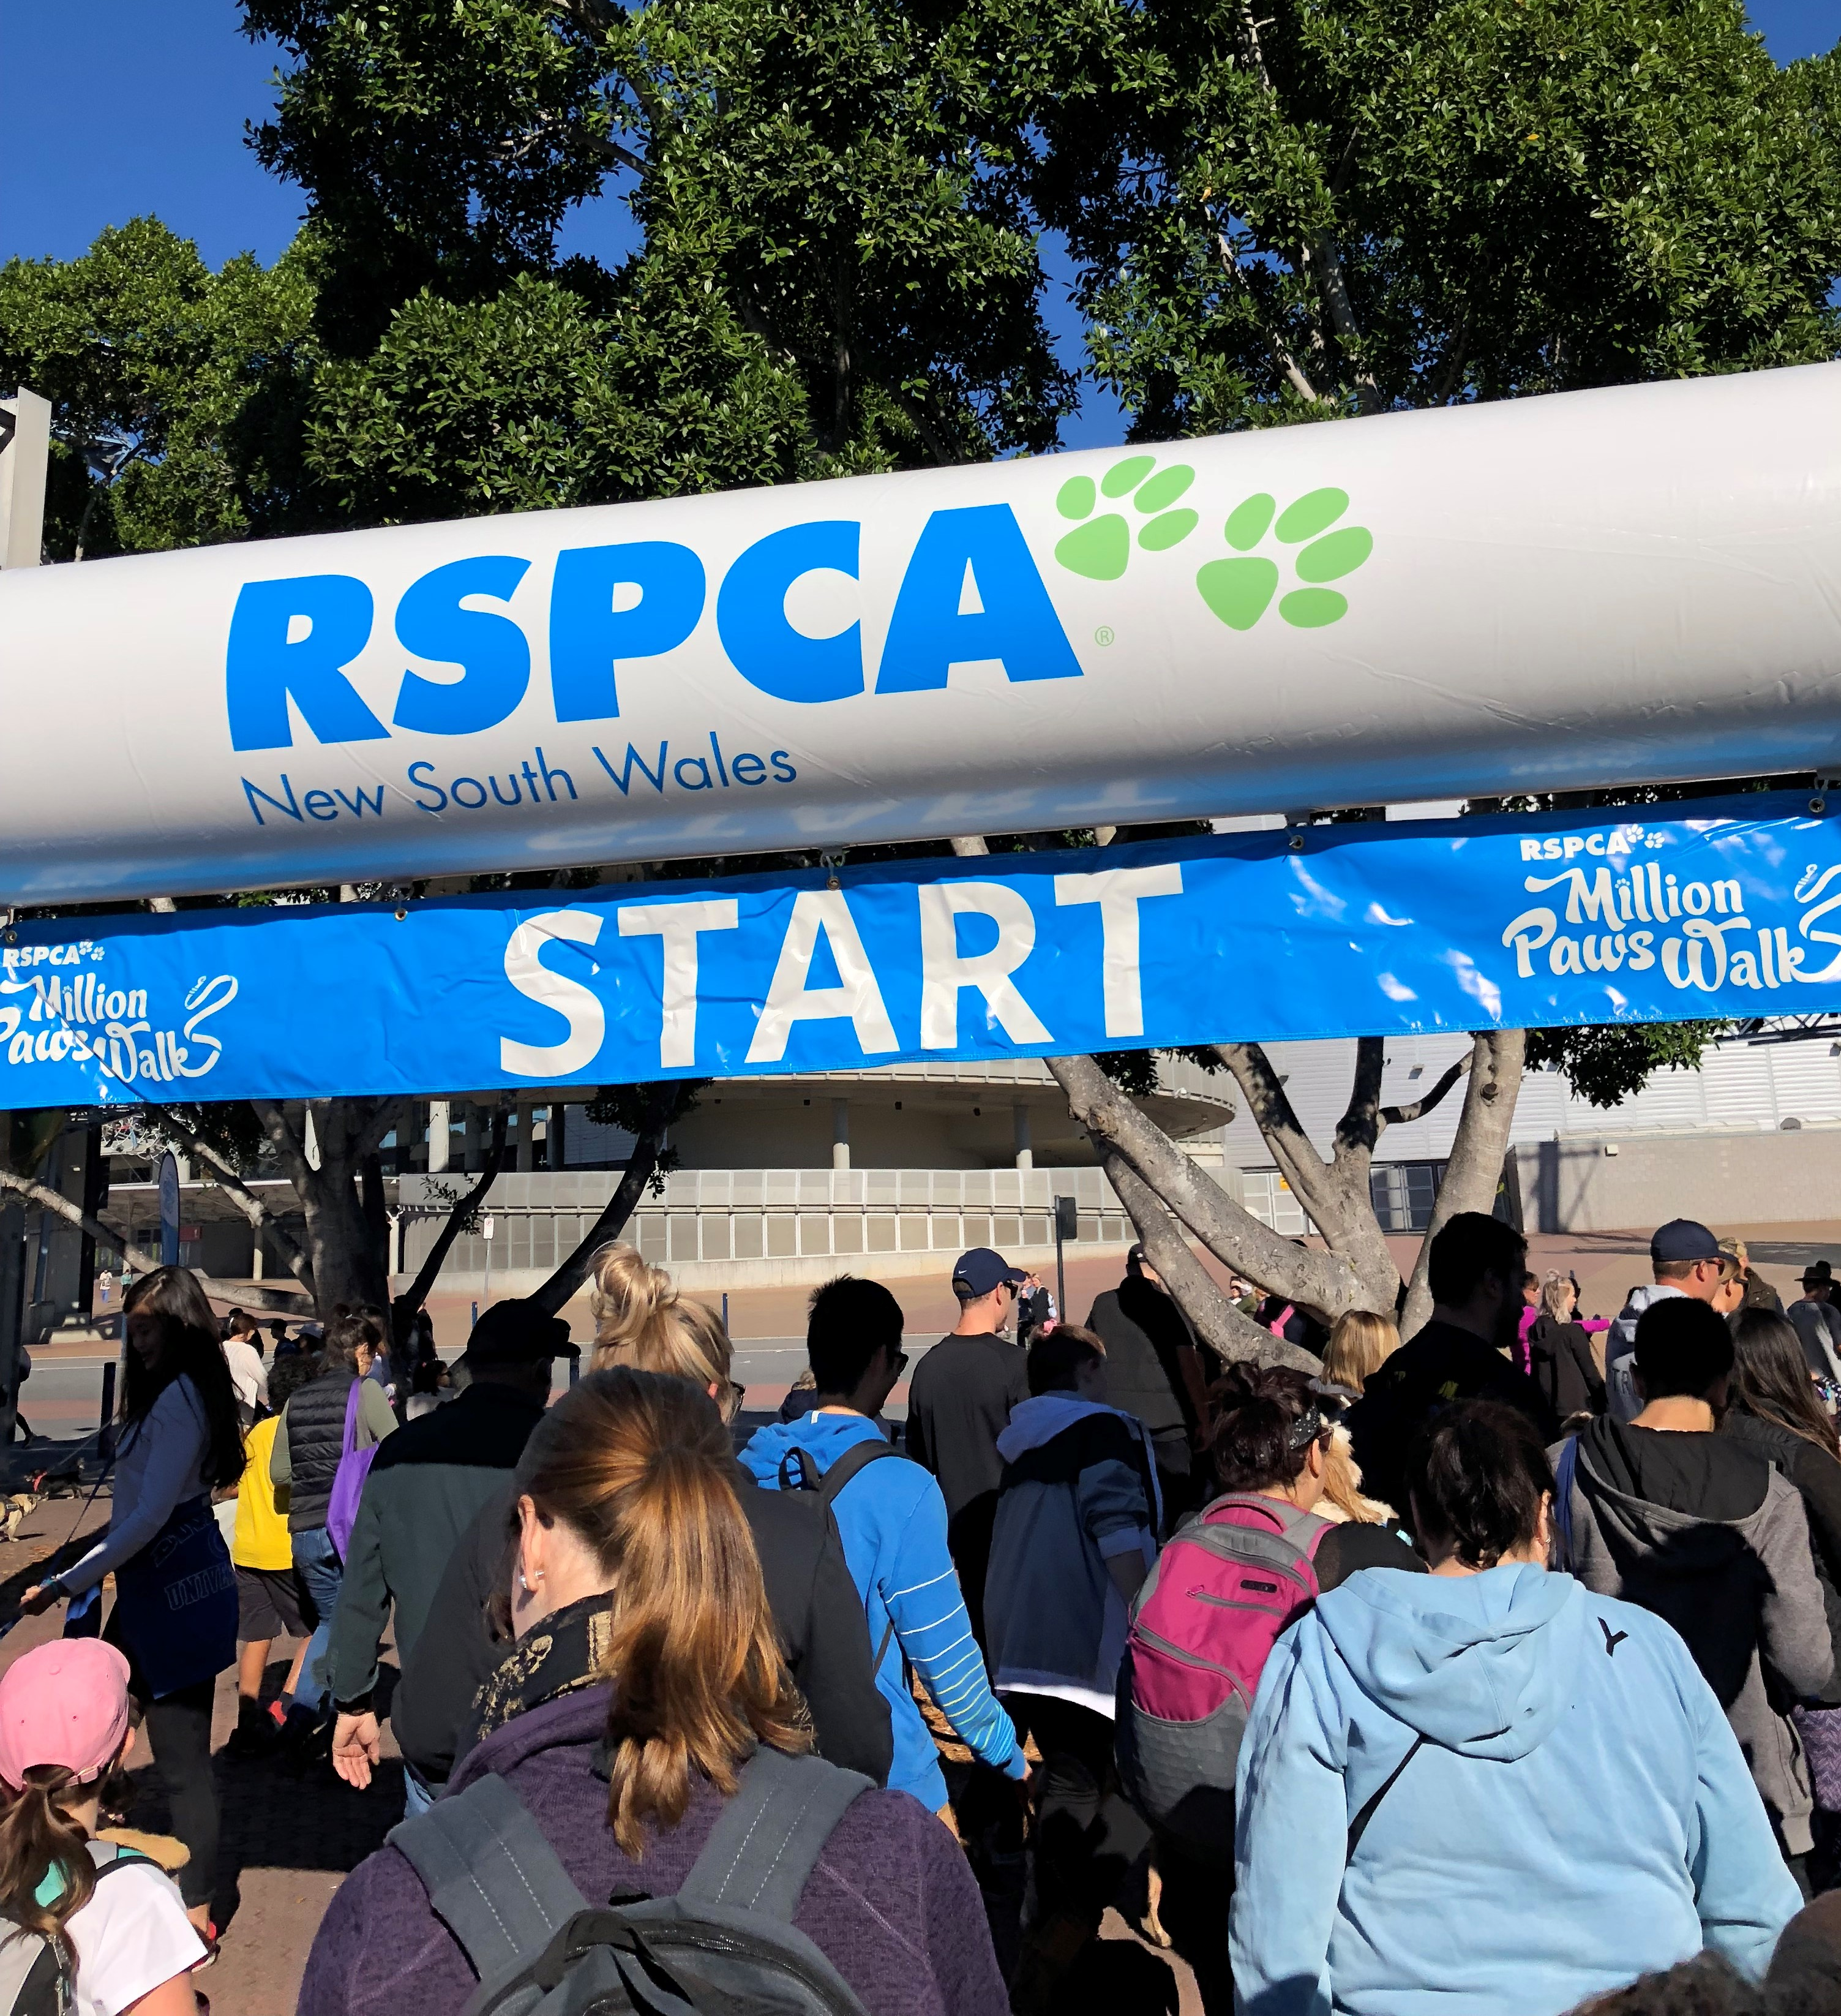 Vetnex is to Participate RSPCA's Million Paws Walk 2019 on the 19th of May at Sydney Olympic Park